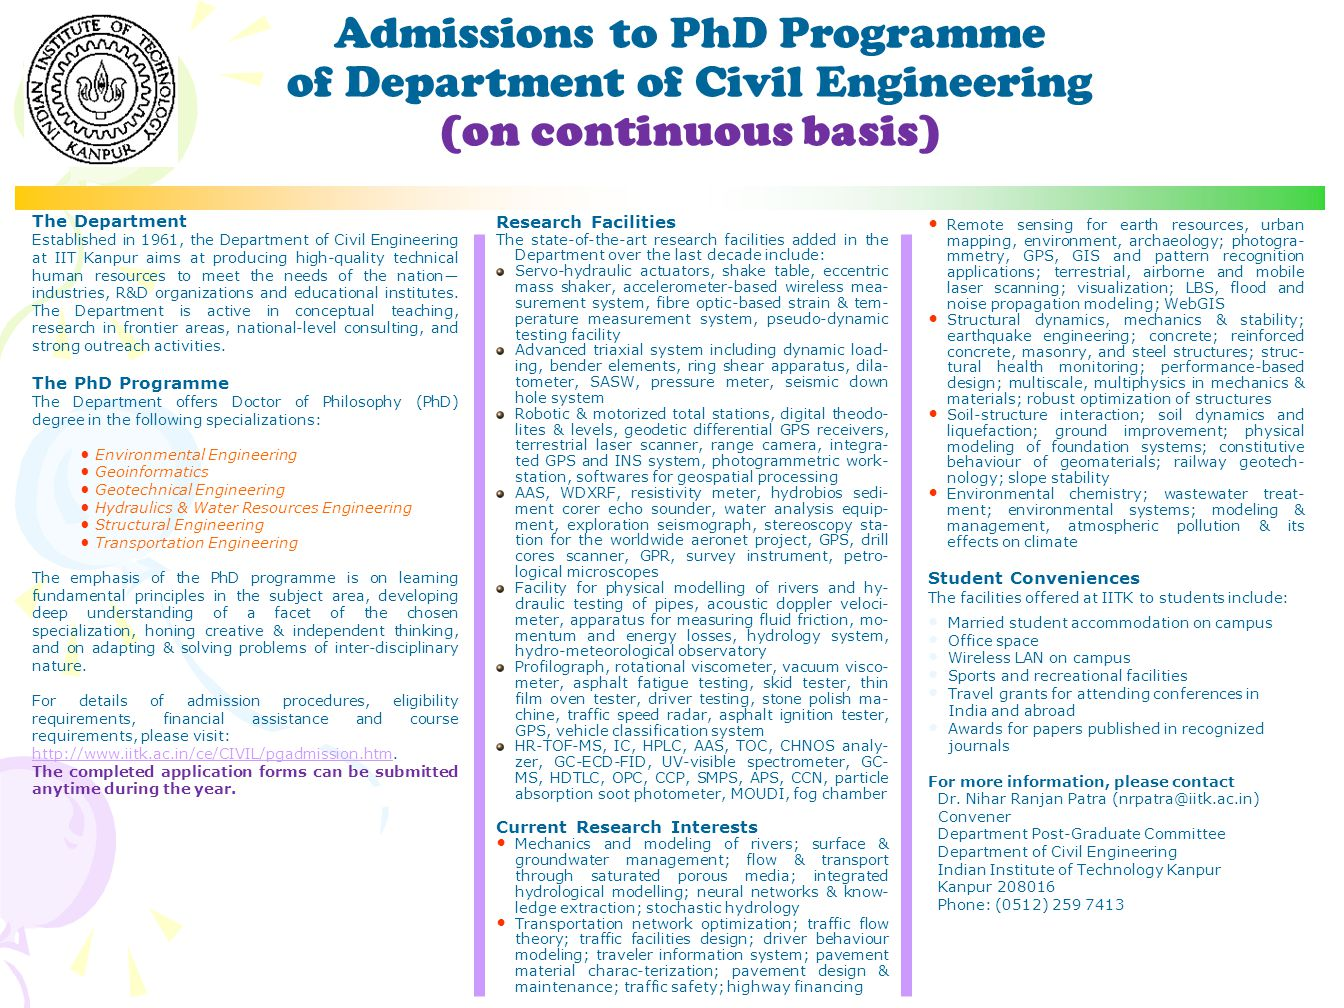 Admissions to PhD Programme of Department of Civil Engineering (on continuous basis) The Department Established in 1961, the Department of Civil Engineering at IIT Kanpur aims at producing high-quality technical human resources to meet the needs of the nation― industries, R&D organizations and educational institutes.